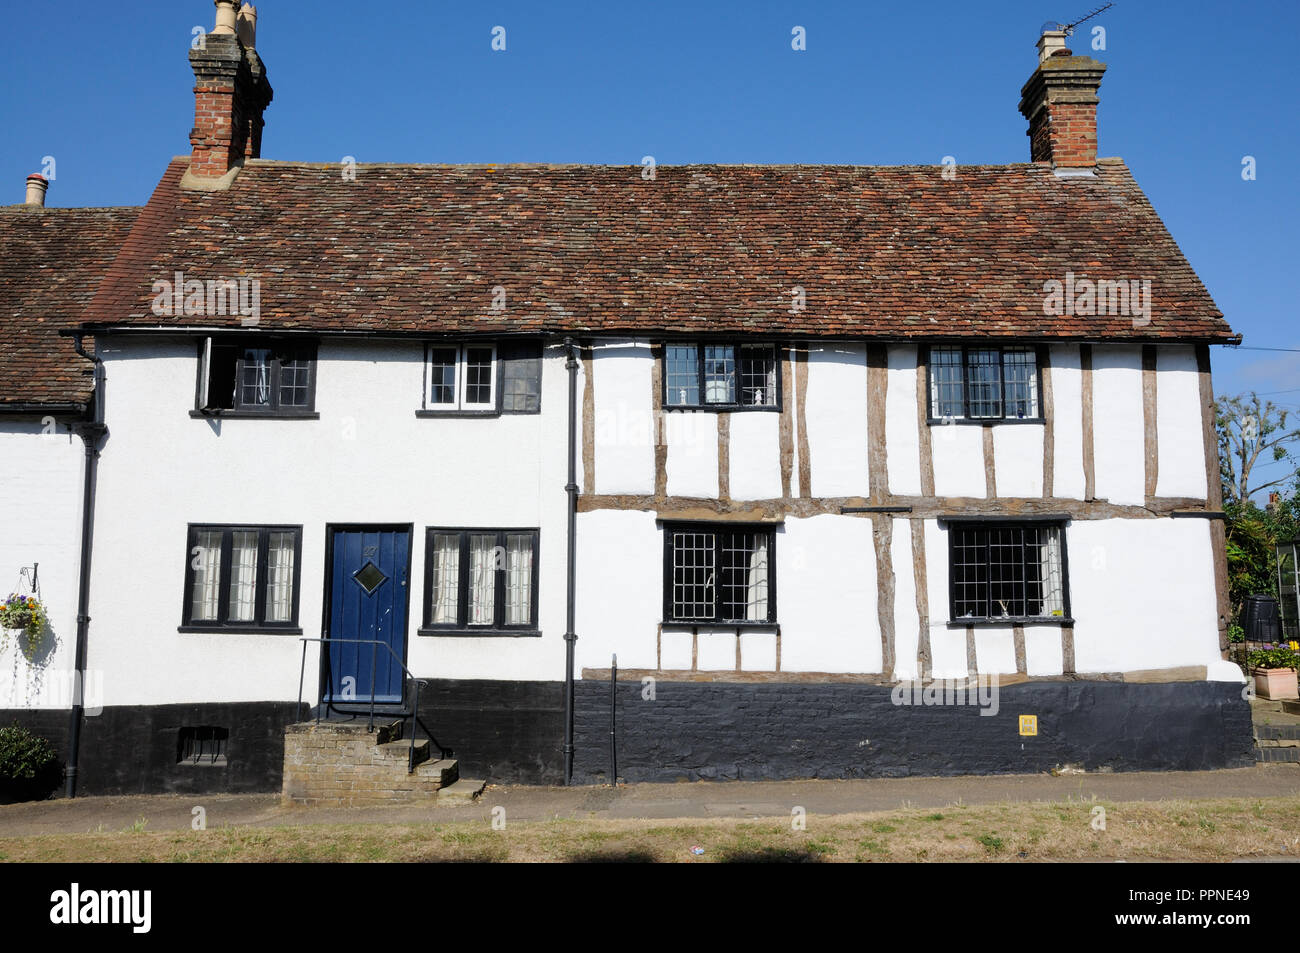 Row of timbered cottages in the High Street, Silsoe, Bedfordshire - Stock Image